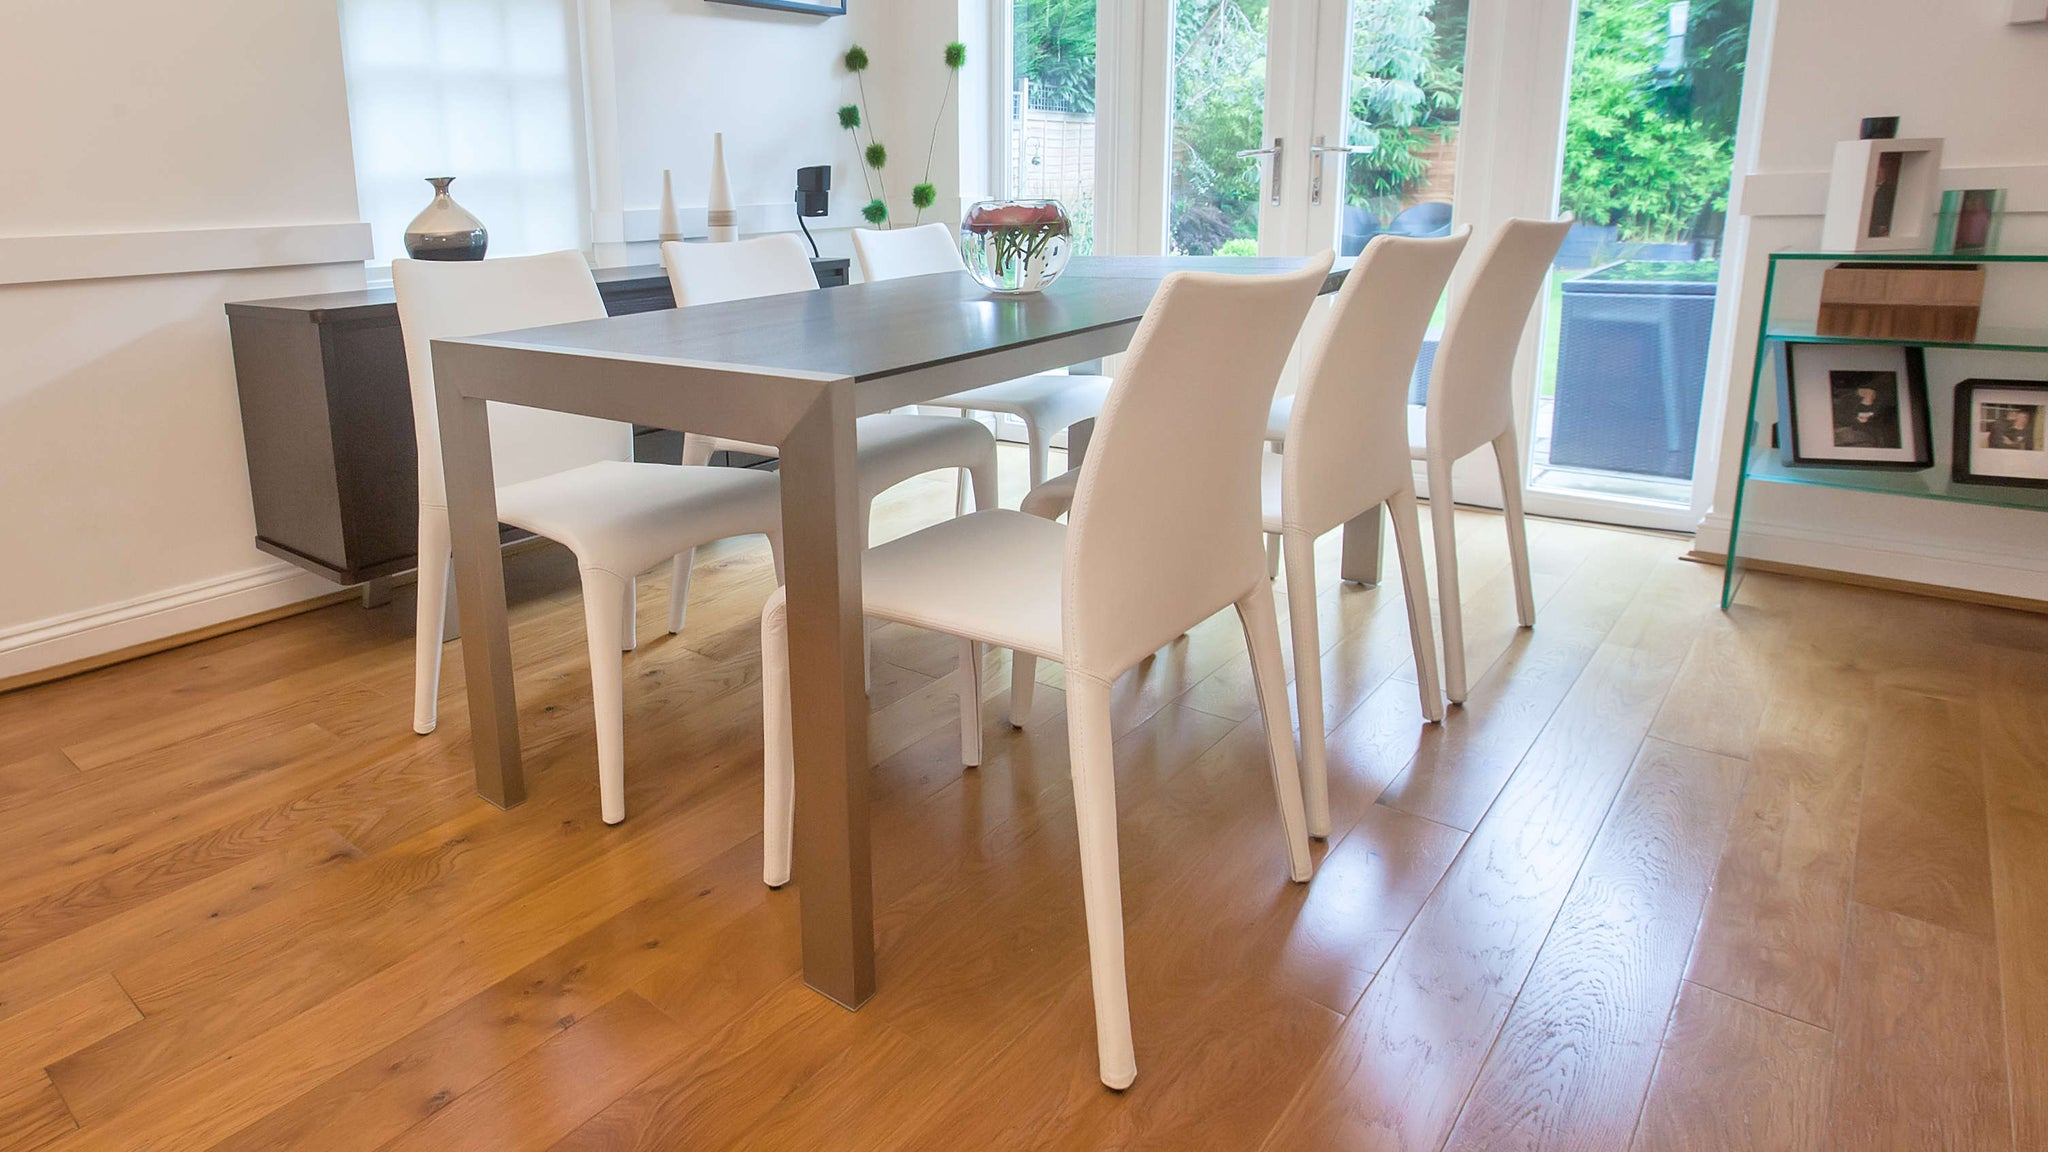 4-8 Seater Extending Dining Table and White Leather Dining Chairs